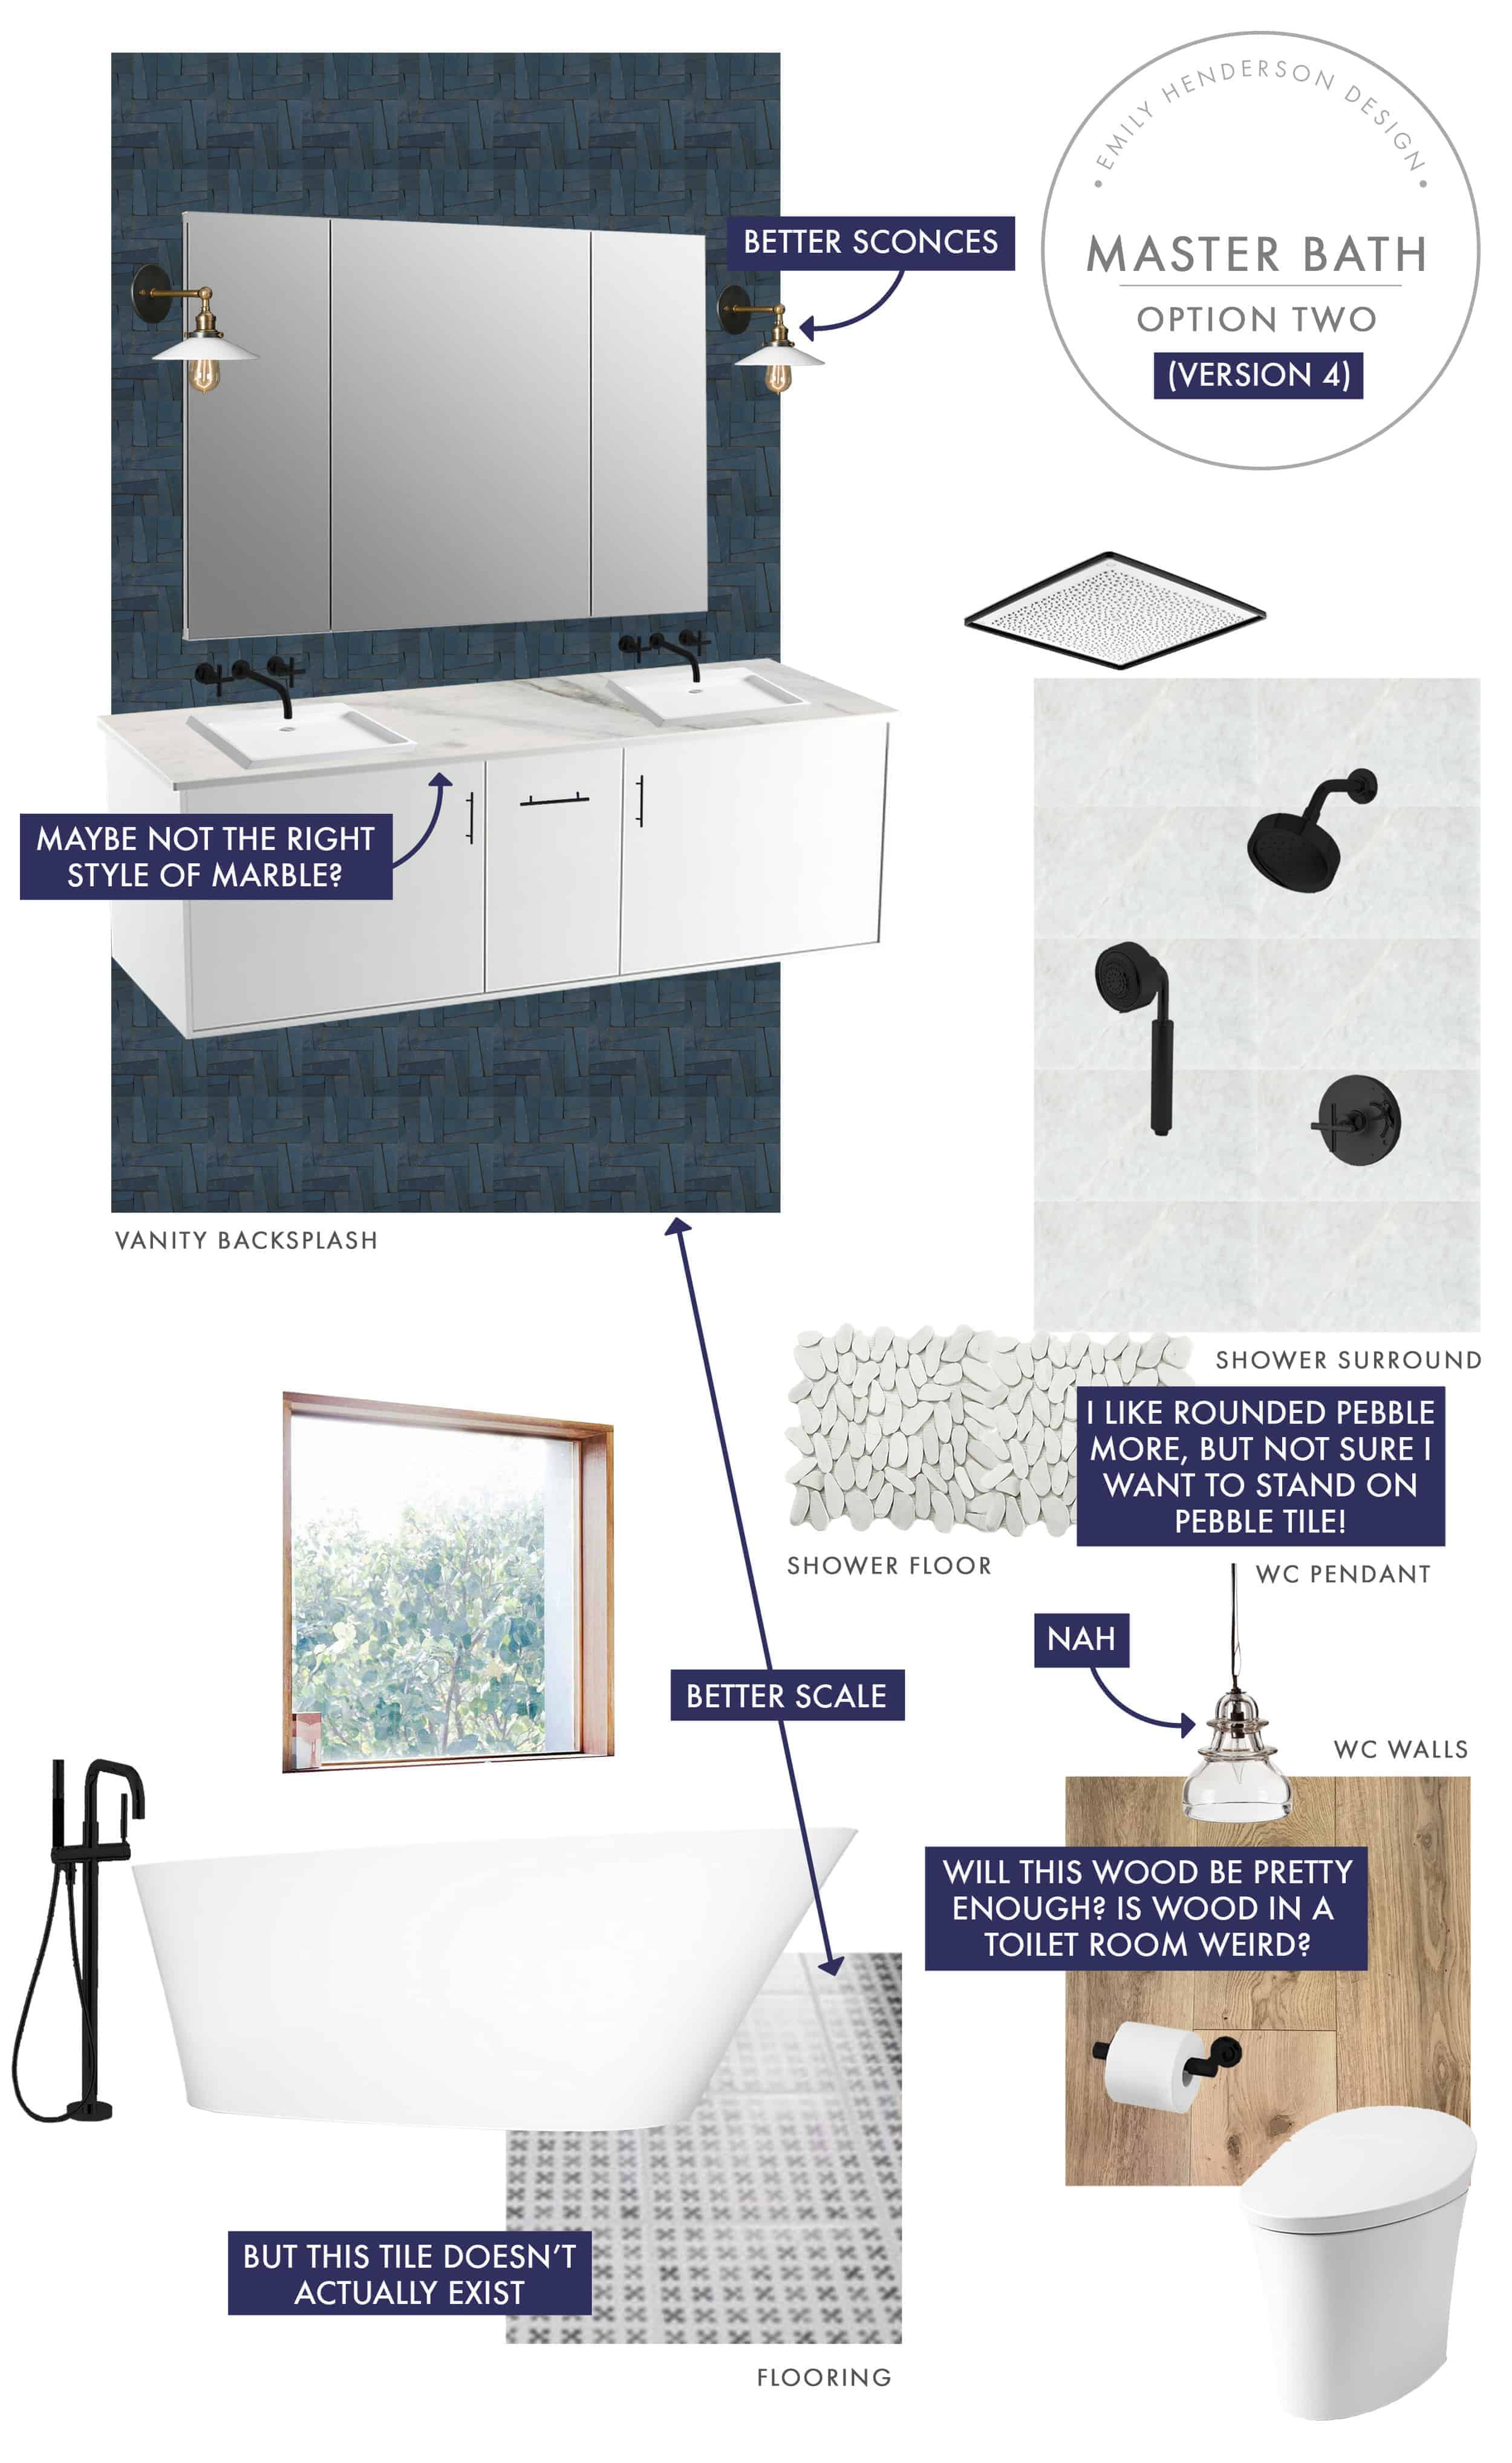 Emily Henderson Mountain Fixer Upper I Design You Decide Master Bath Final Option Two V04